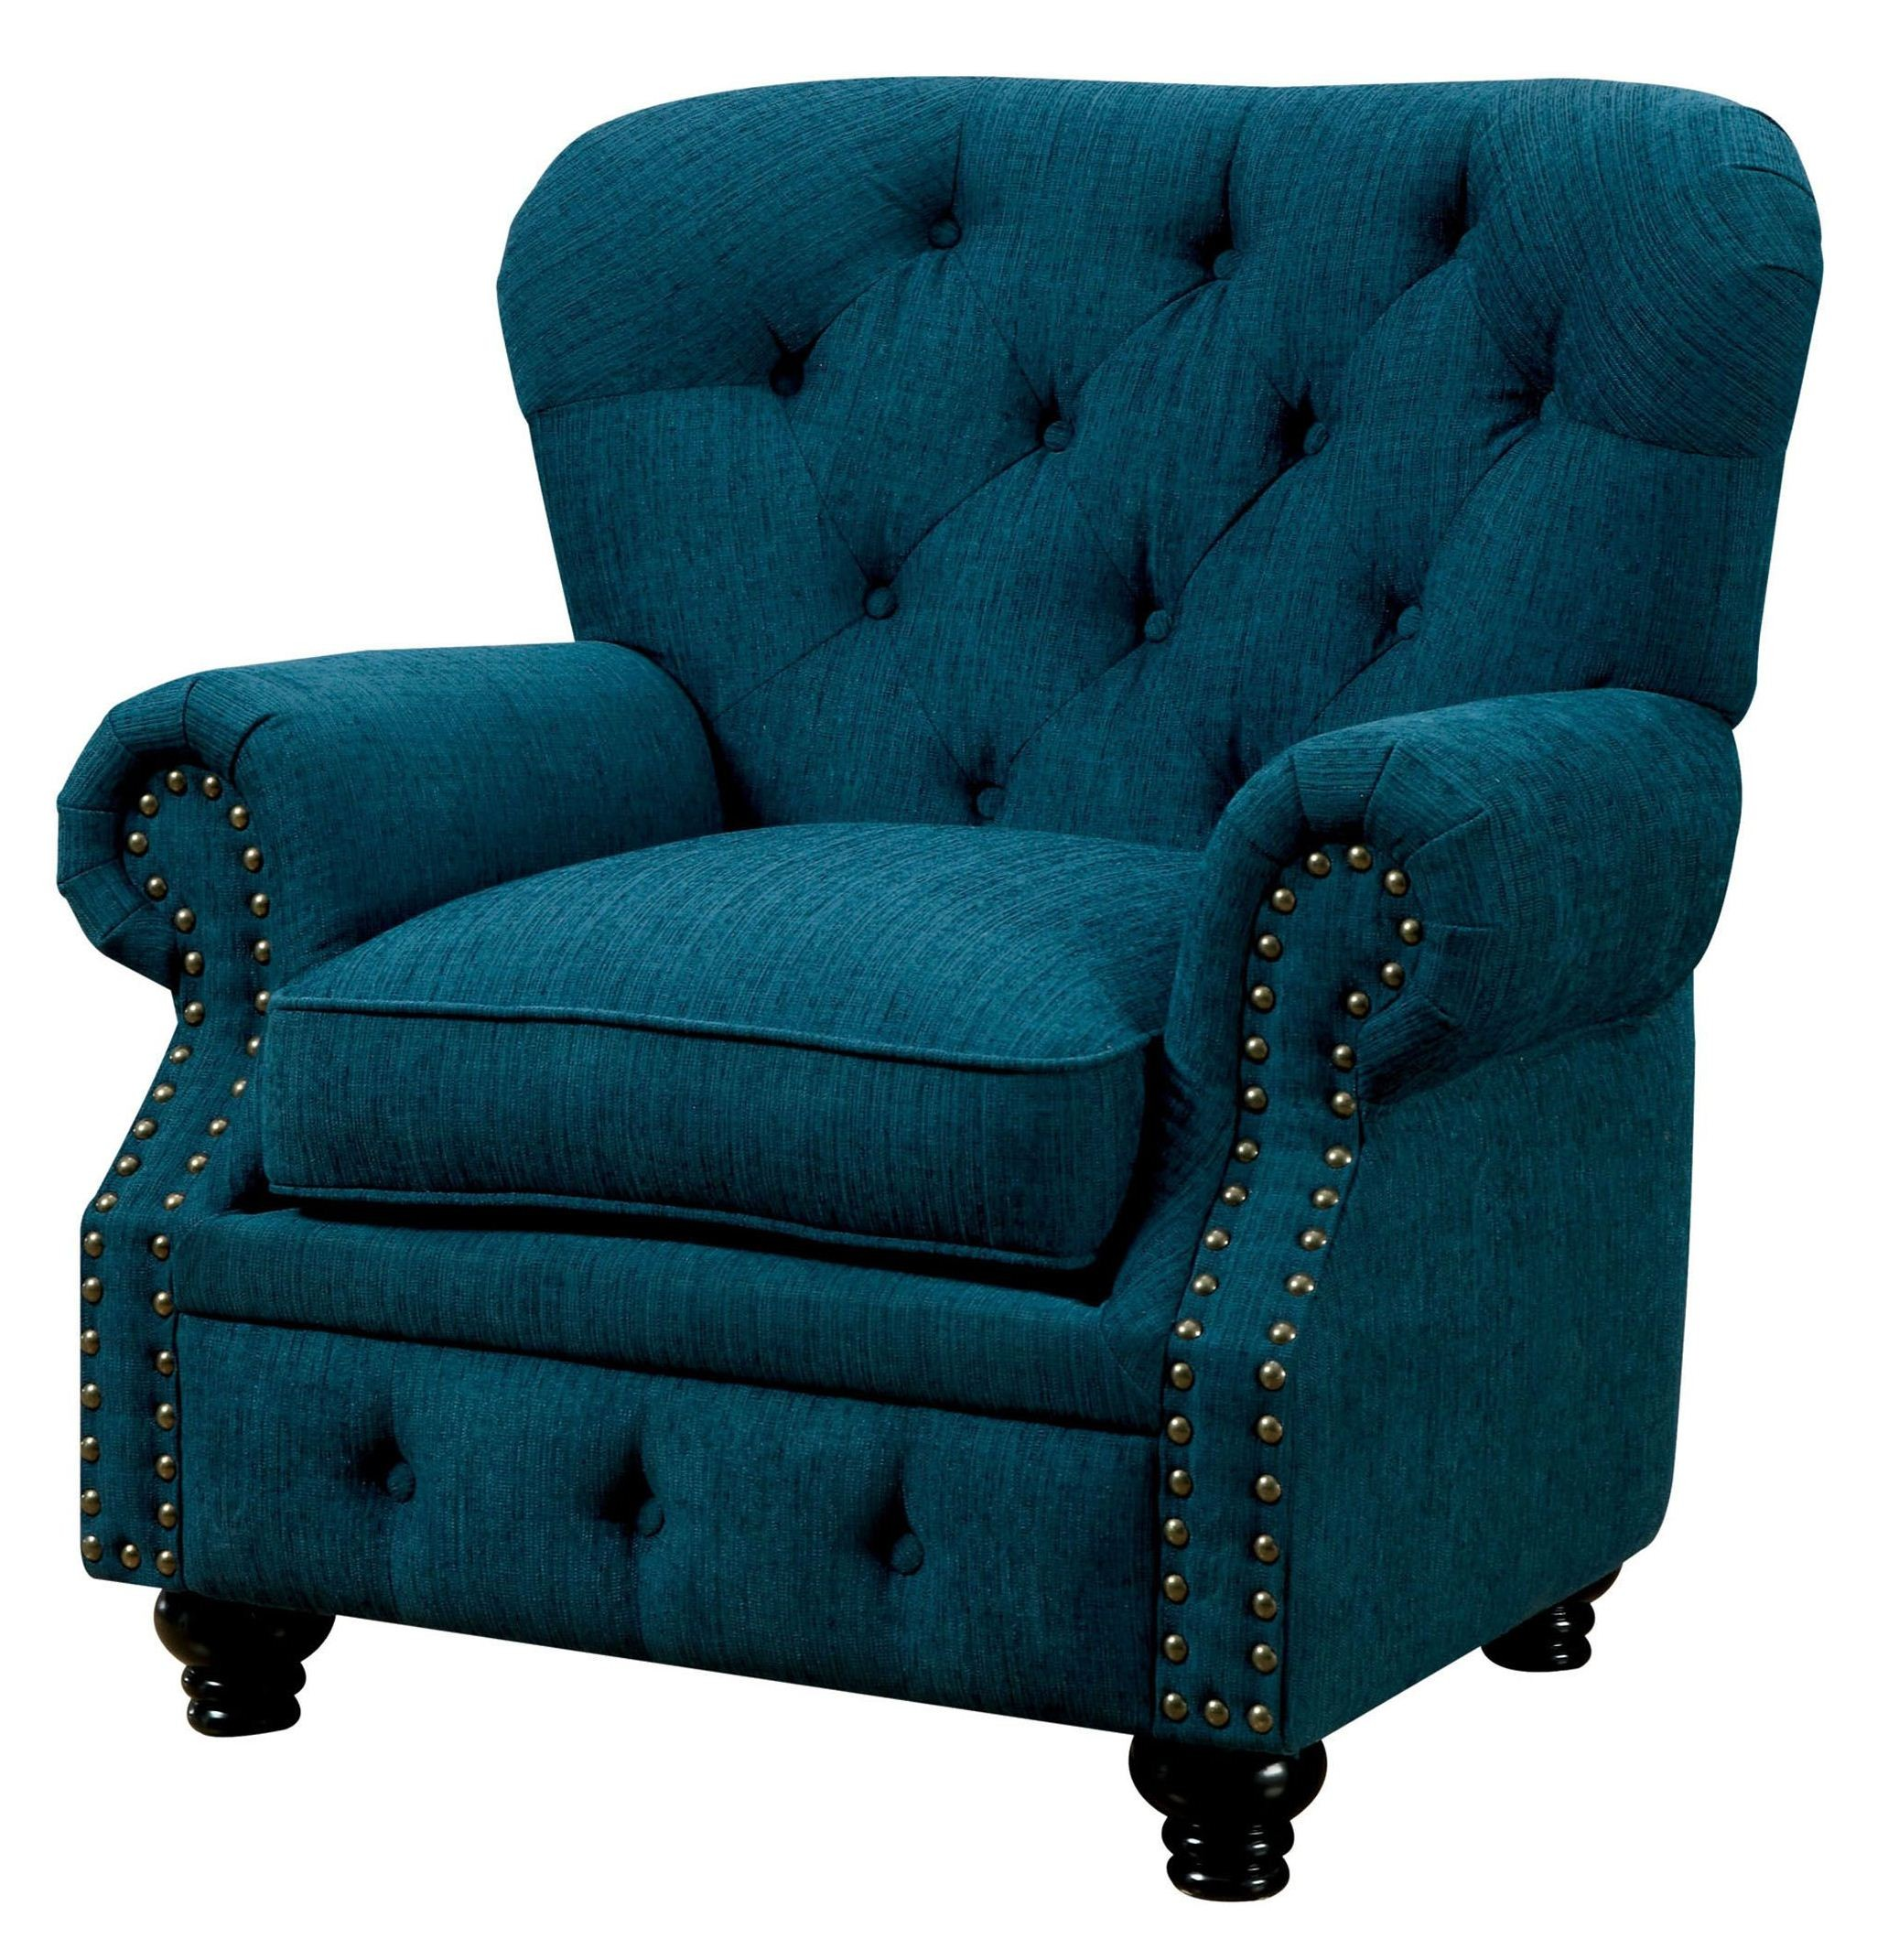 Stanford Dark Teal Fabric Chair From Furniture Of America